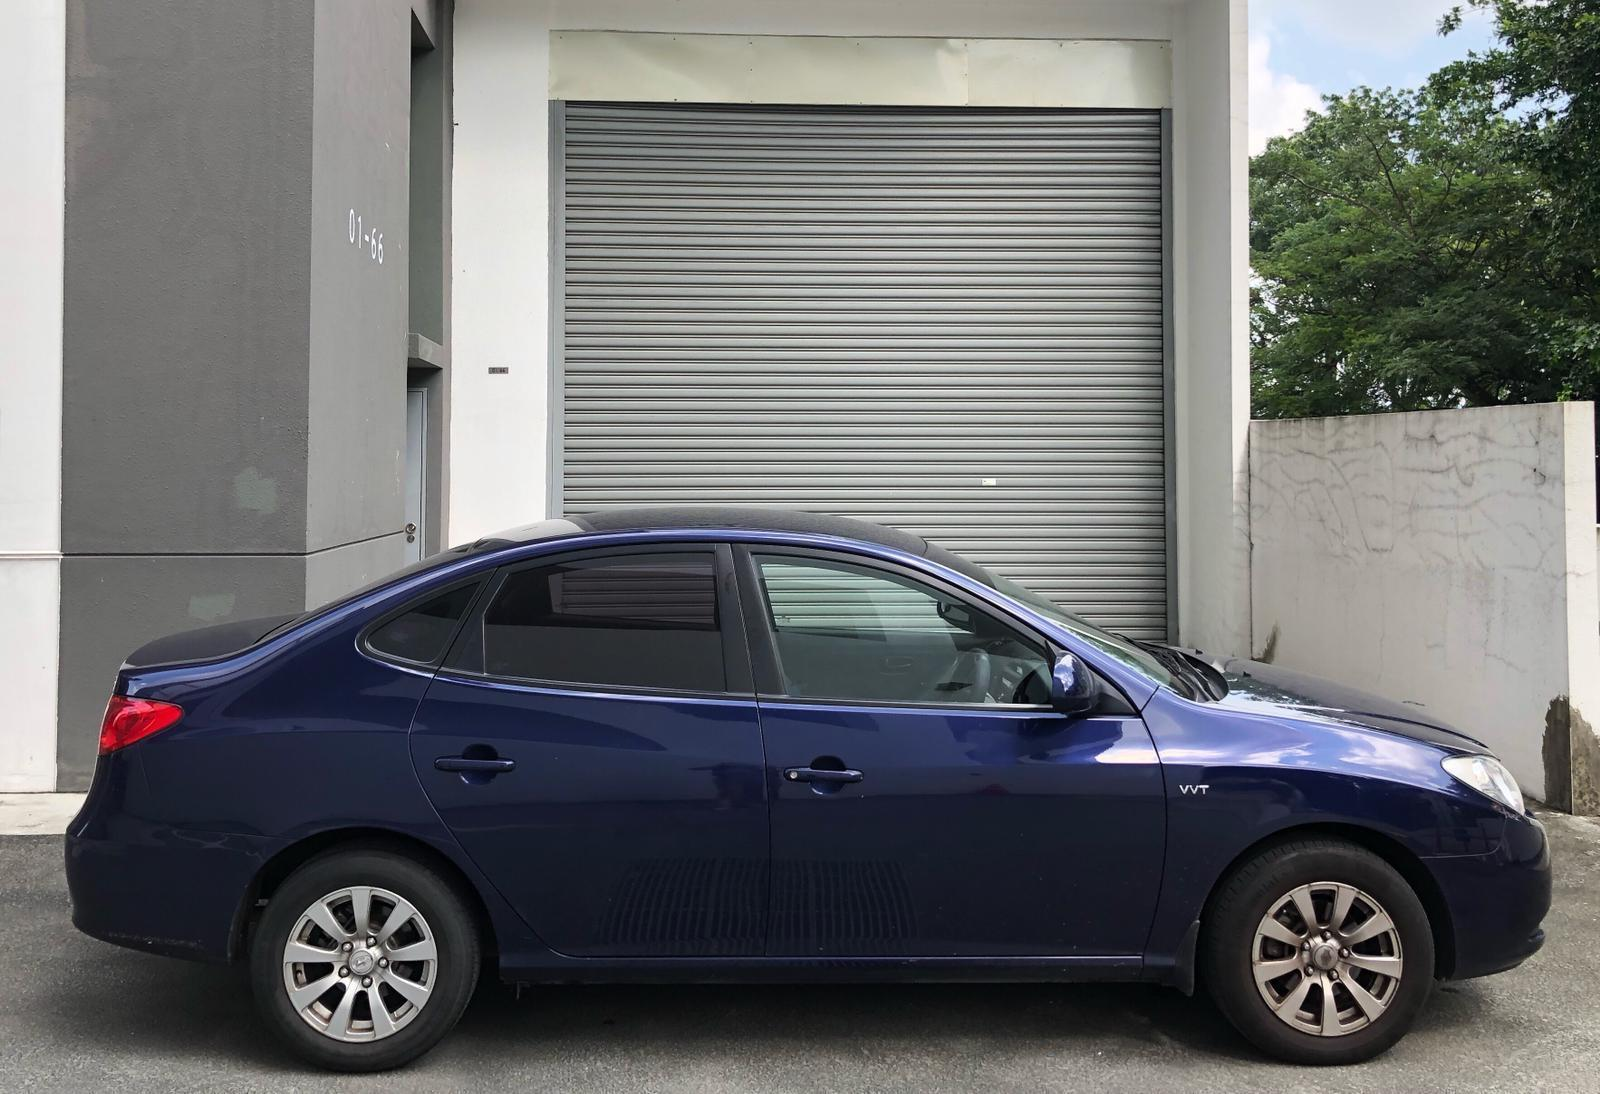 Toyota Vios Renting out the Cheapest for Grab Gojek Personal use